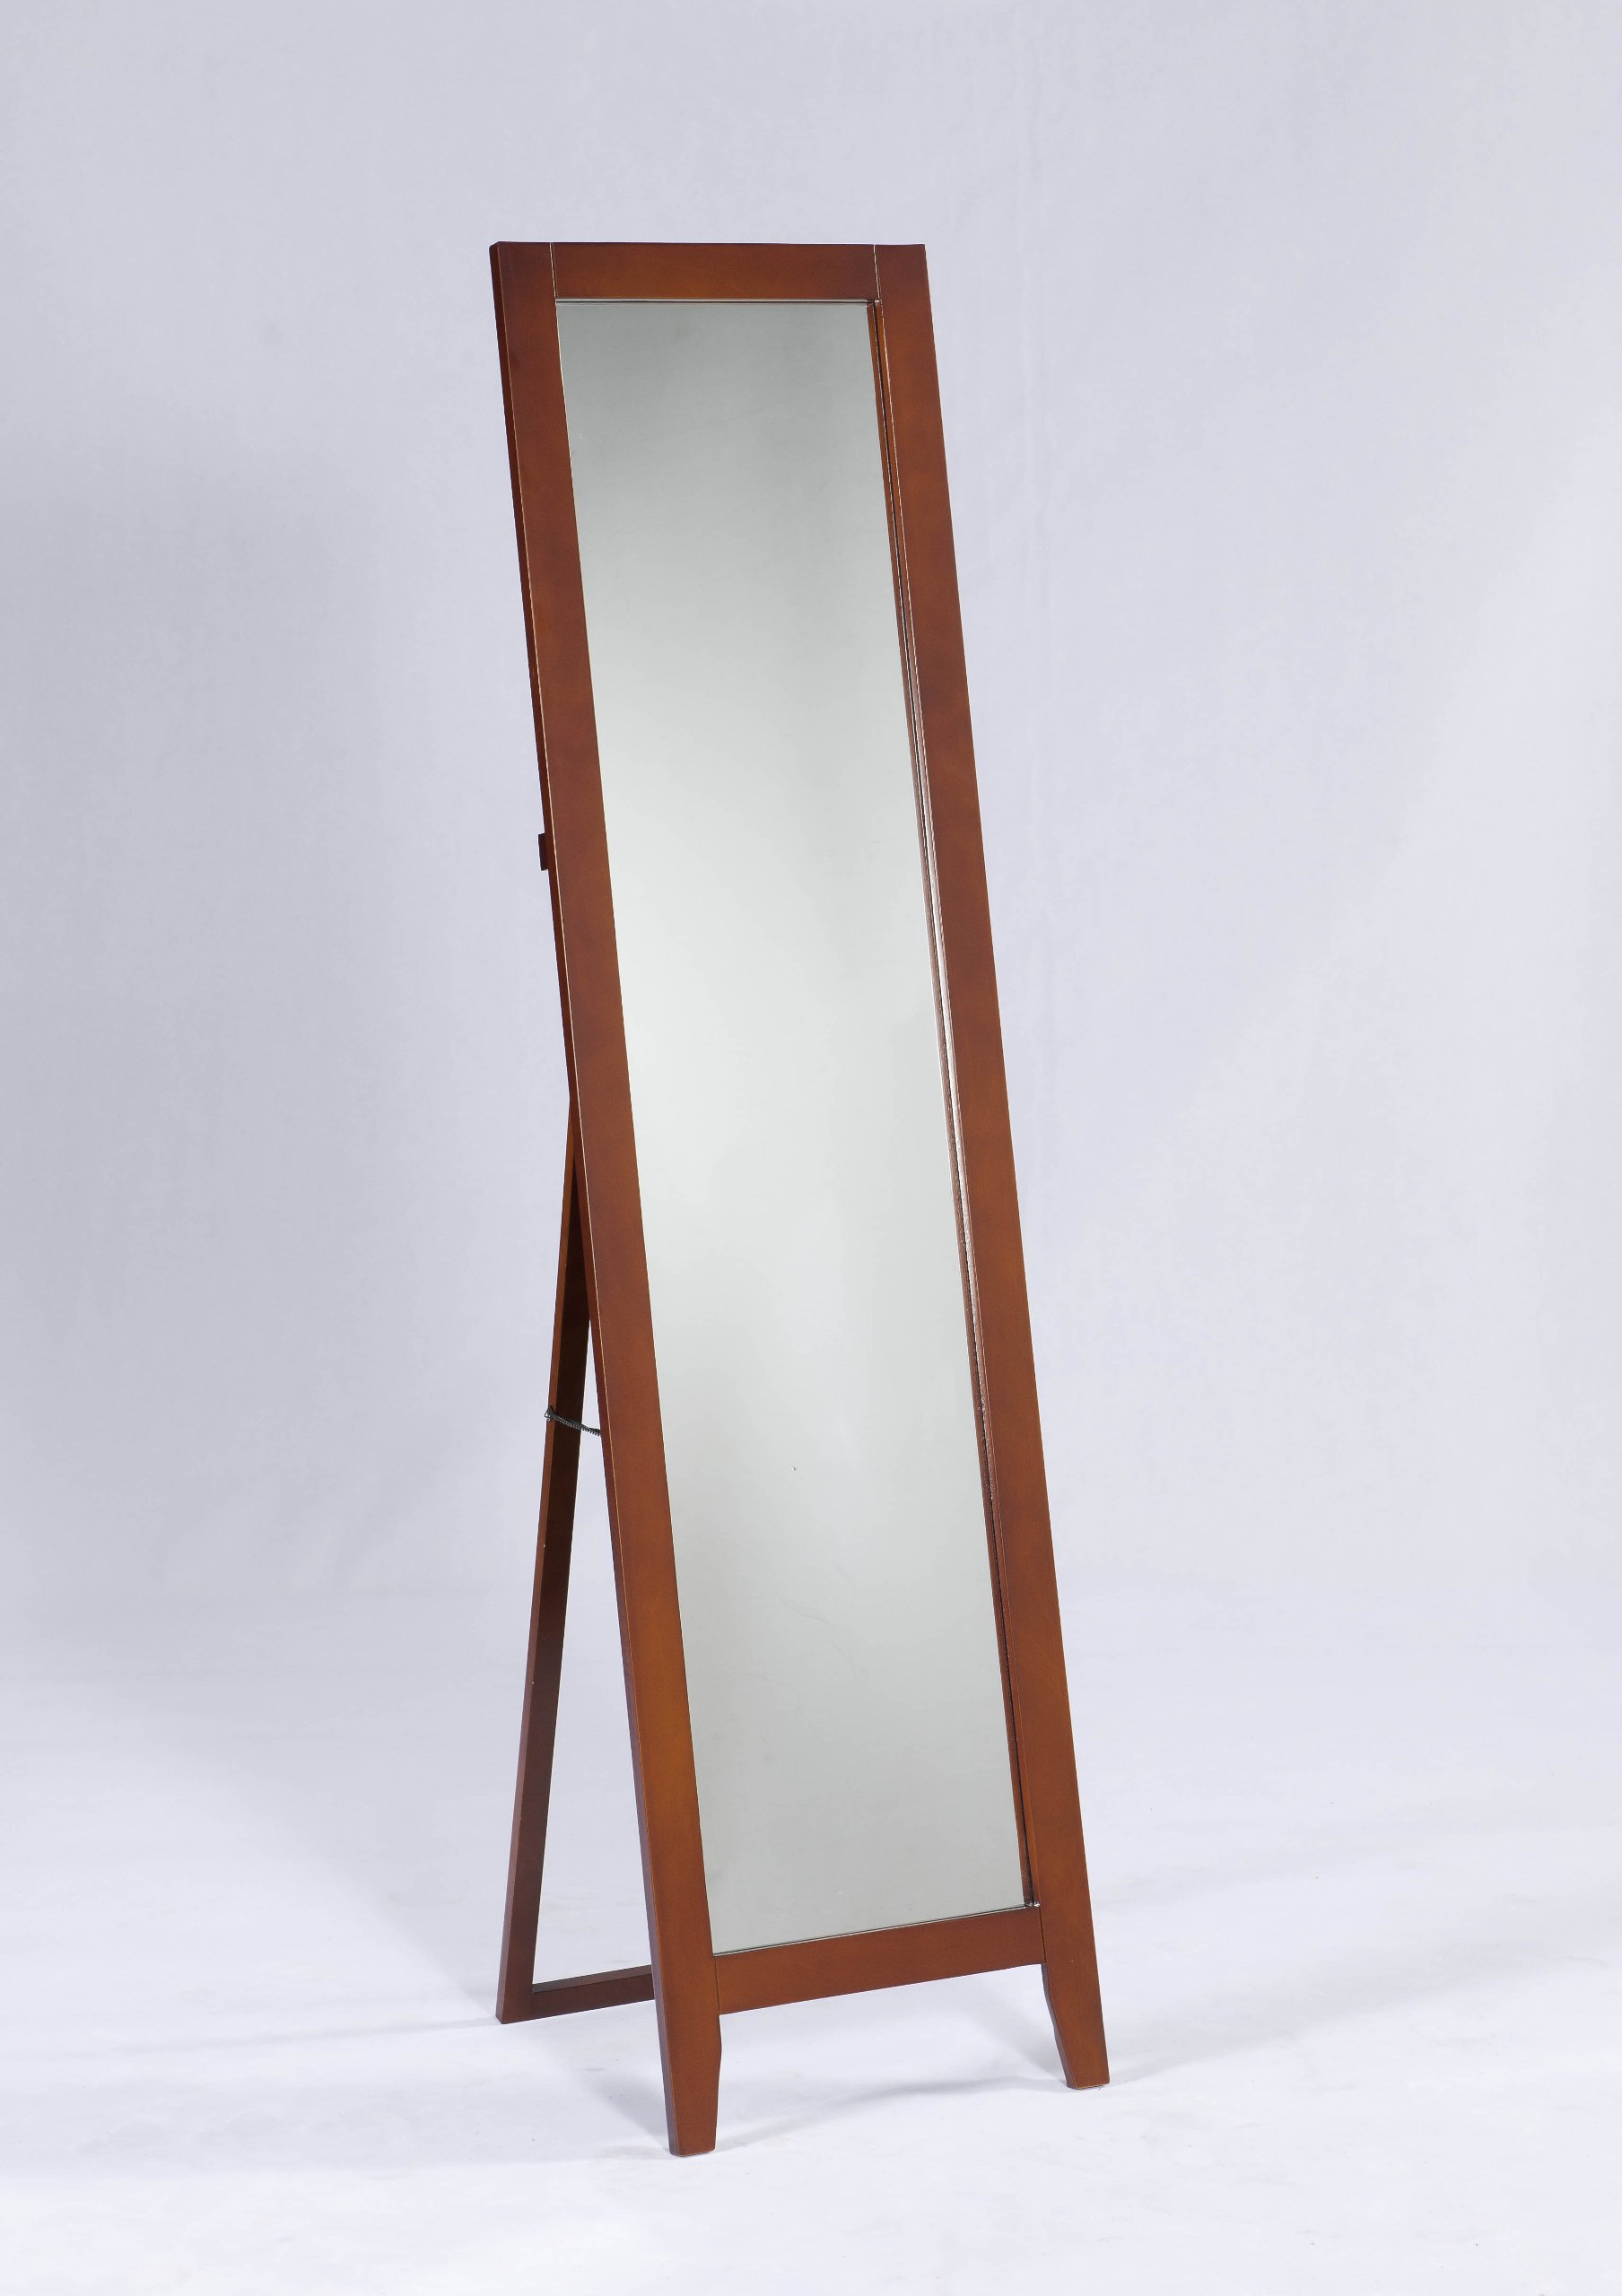 King's Brand Brown Finish Wood Frame Floor Standing Mirror